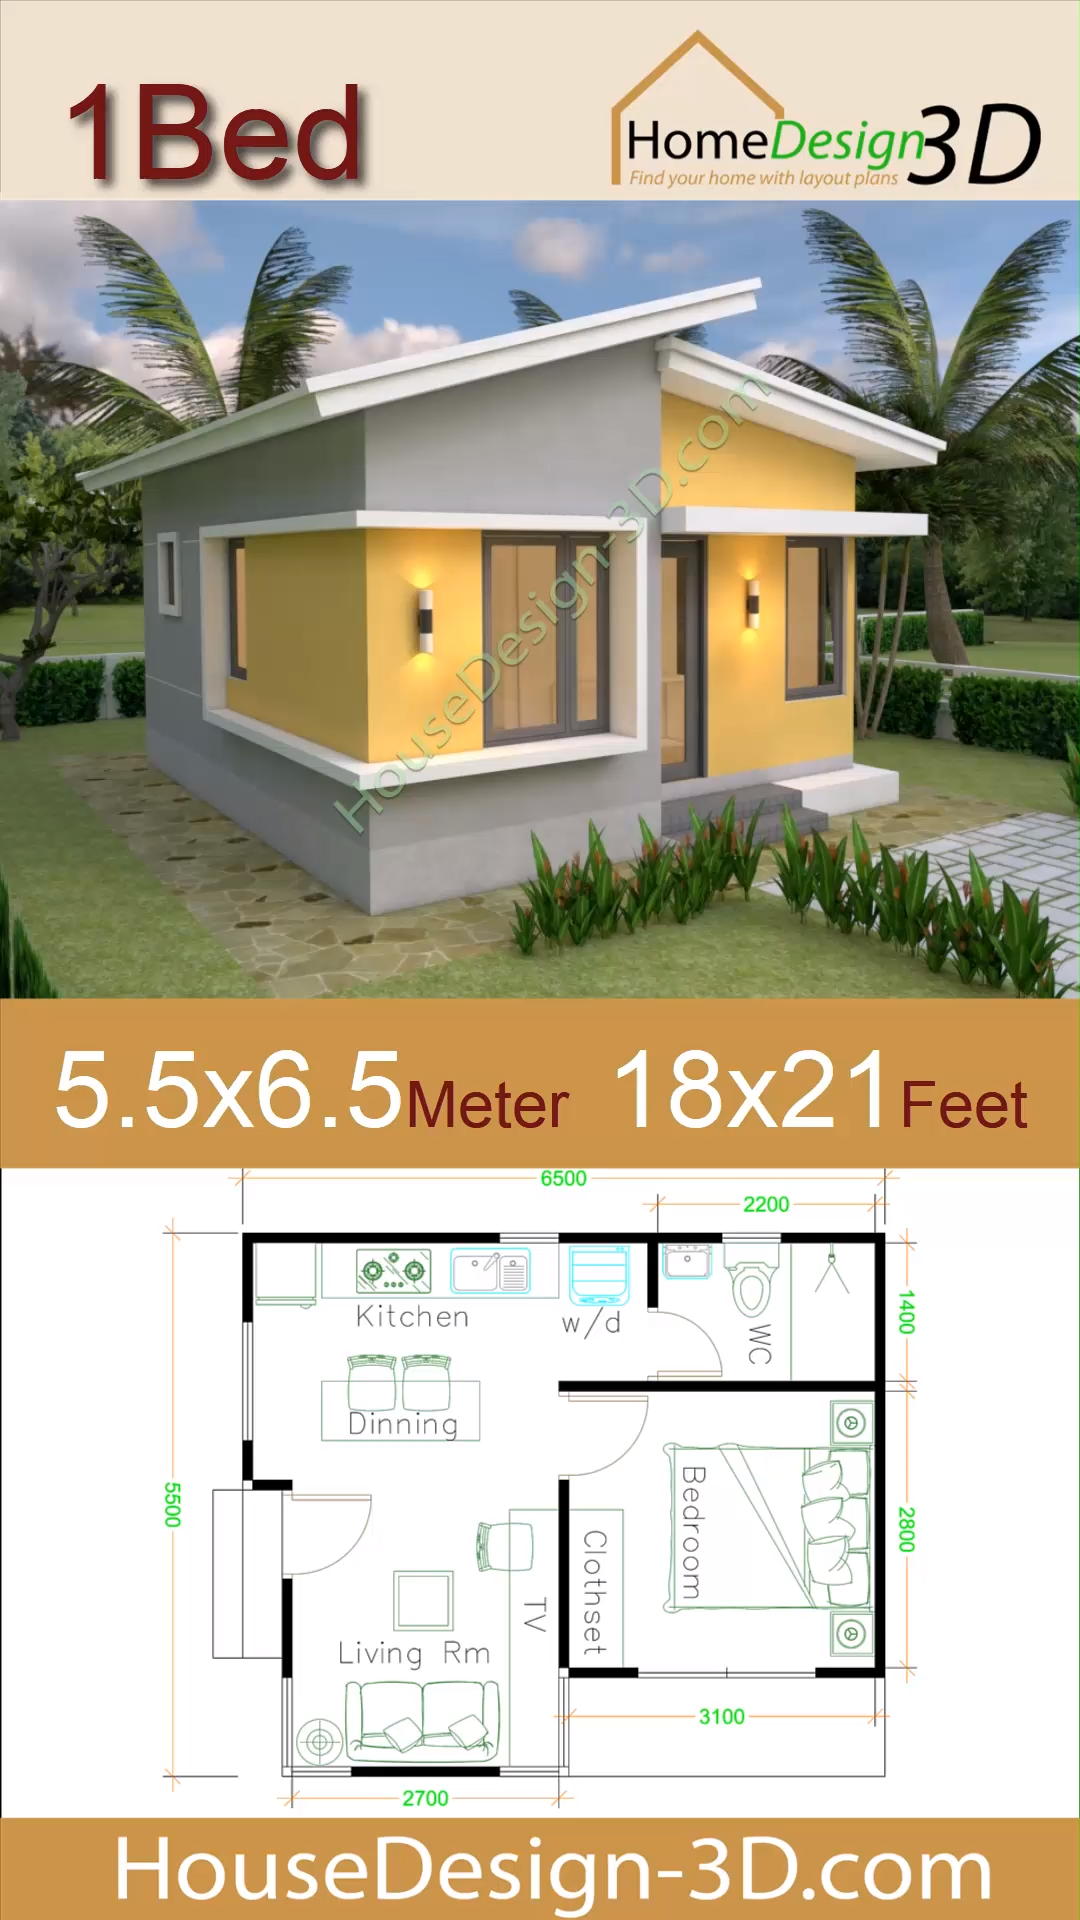 Small House Plans 5 5x6 5 With One Bedroom Shed Roof Video Small House Design Small House Plans House Plans